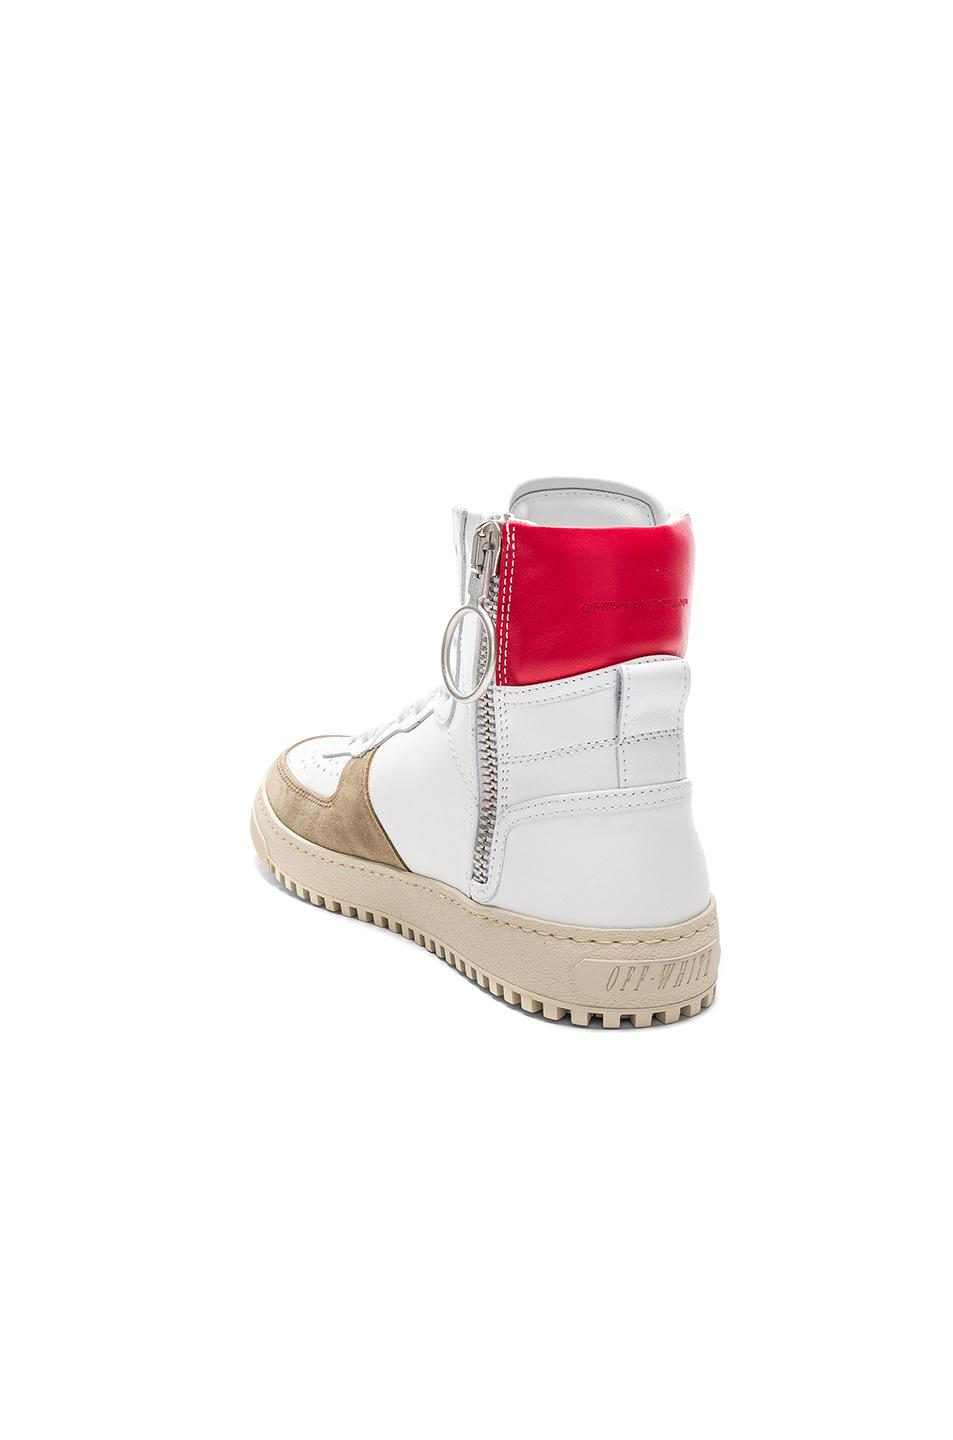 Off-White c/o Virgil Abloh Suede 70s High Top Sneakers in White & Red (White)